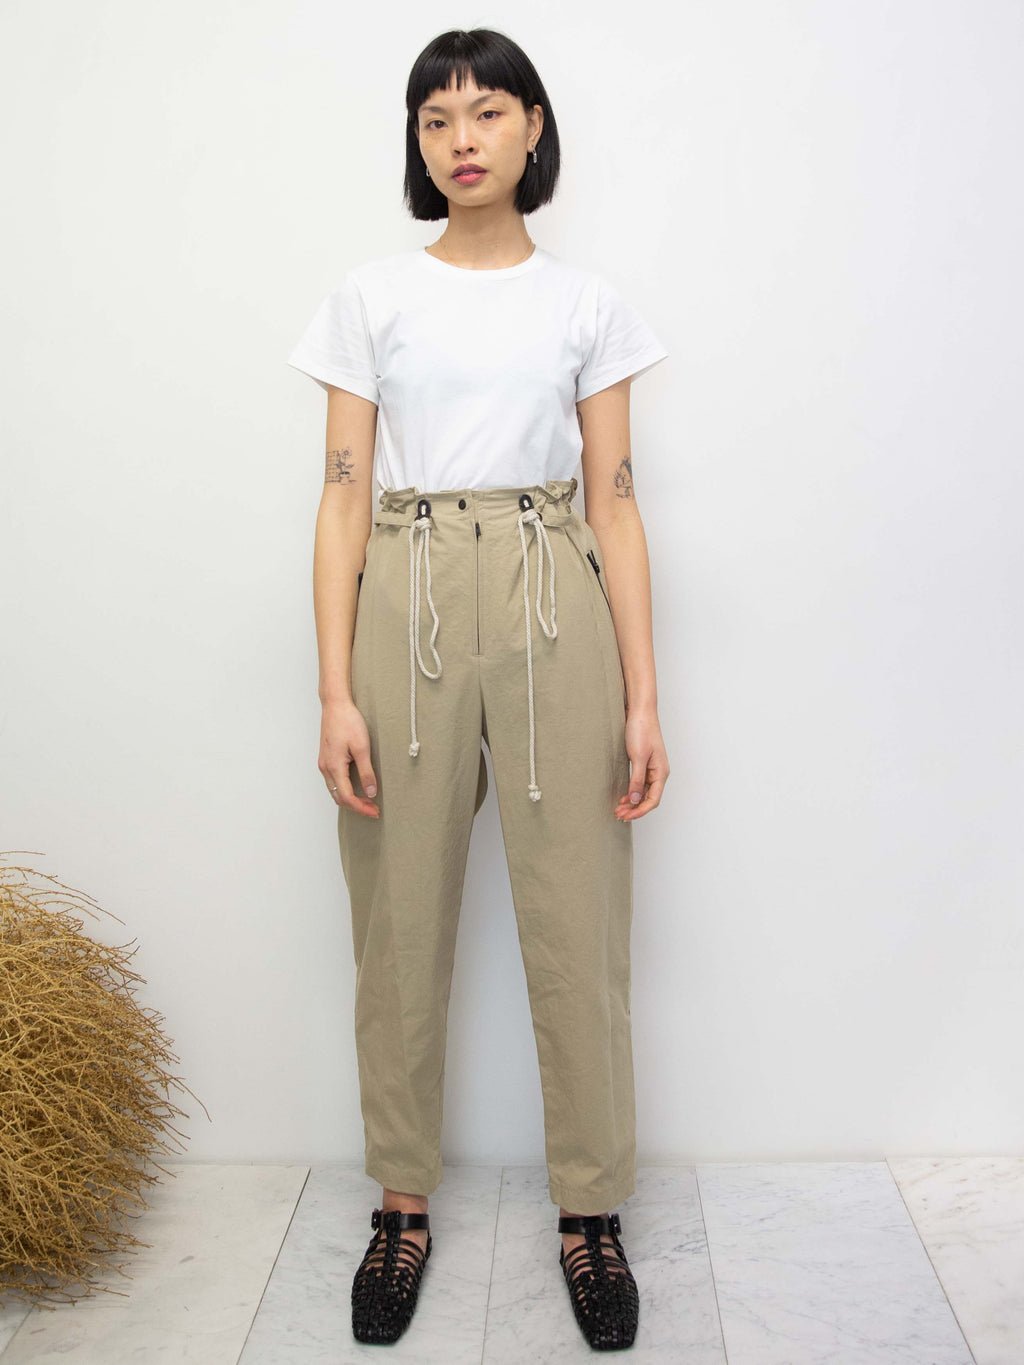 Waist Tie Oxford Pants